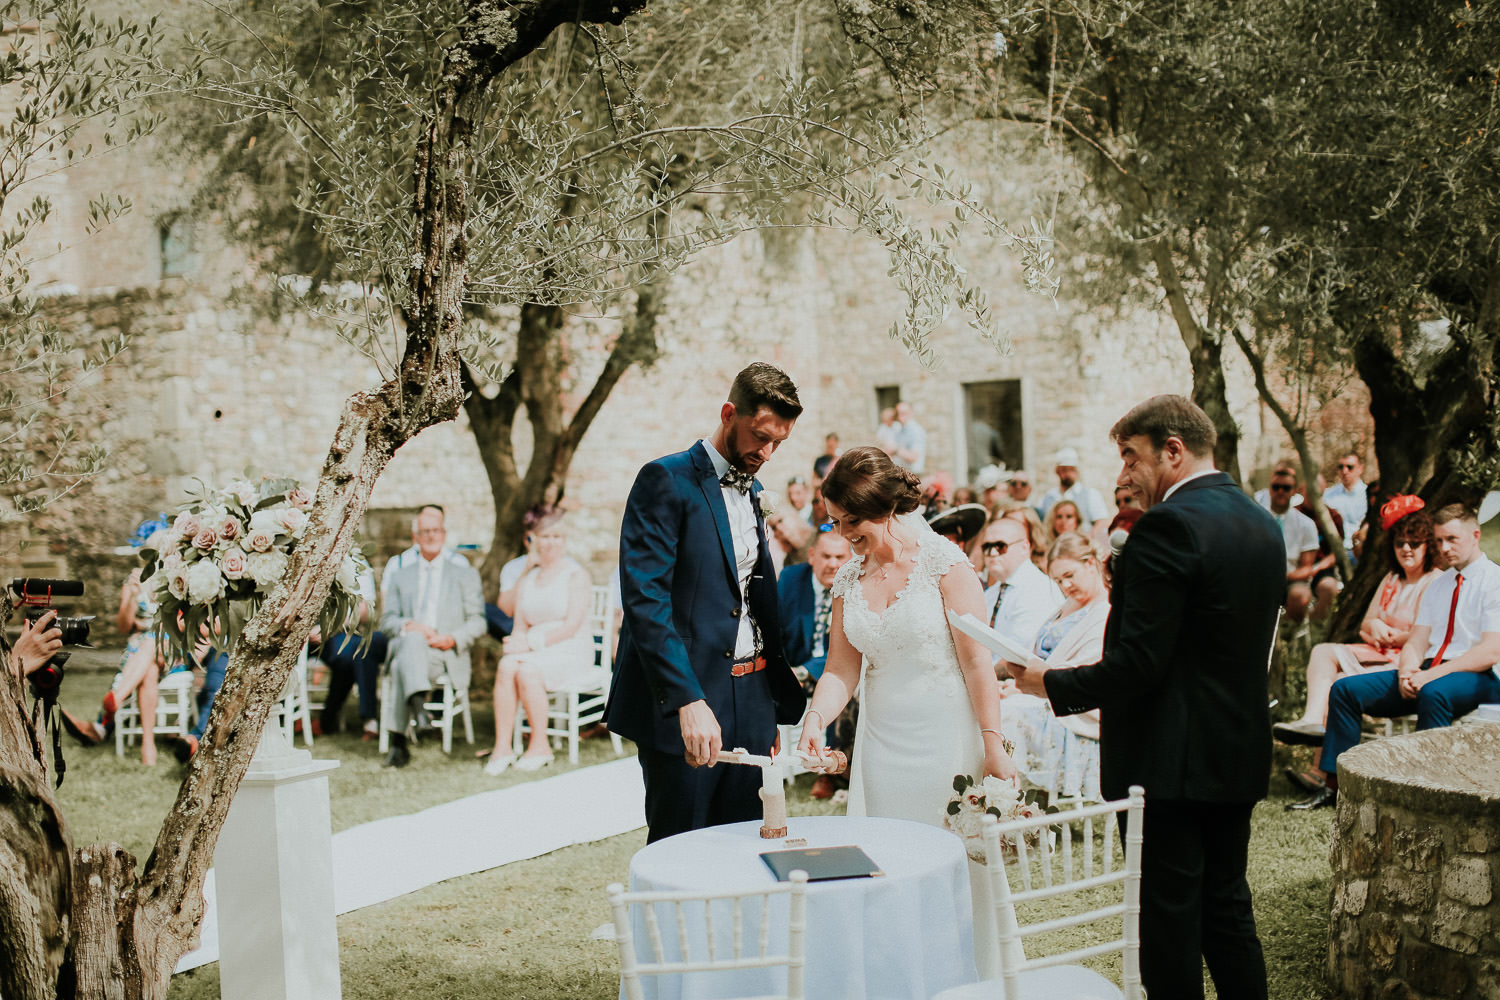 RUSTIC CASTLE WEDDING IN TUSCANY AT CASTELLO DI BIBBIONE